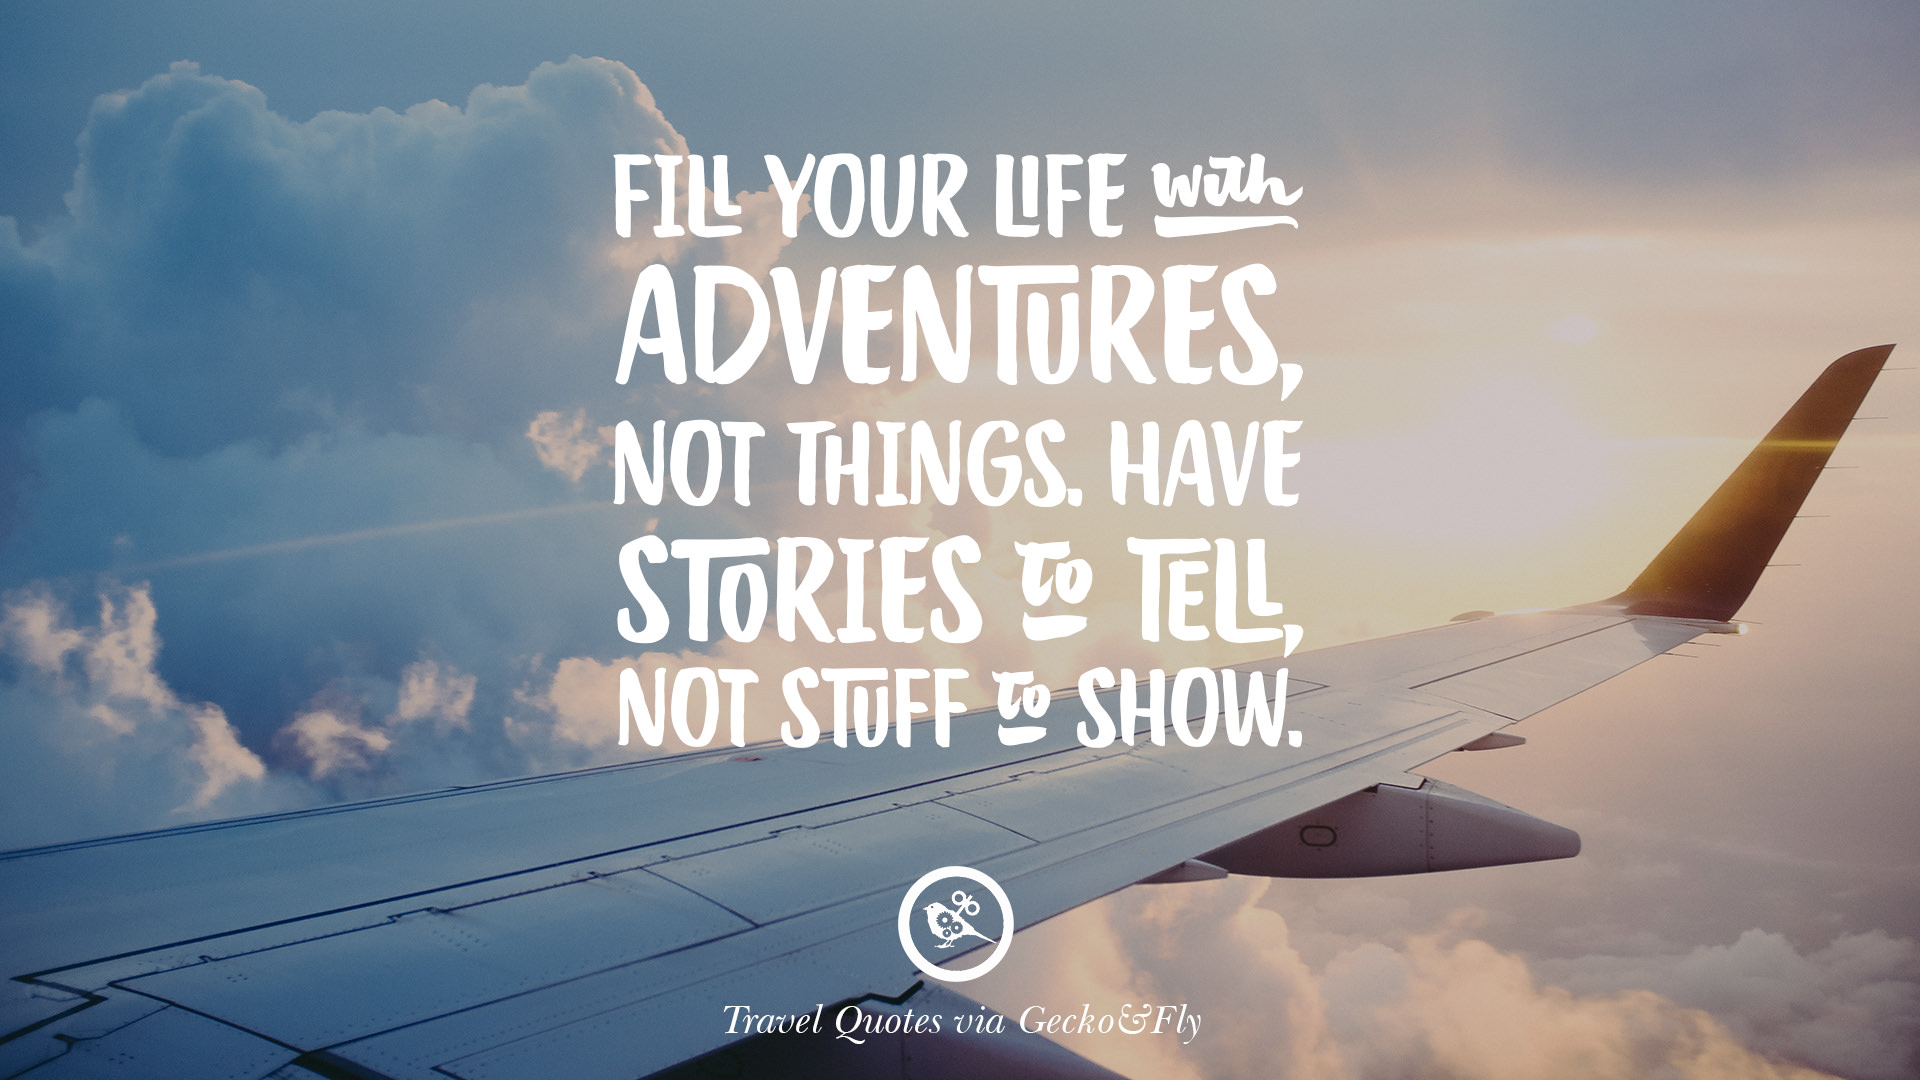 Fill Your Life With Adventures Not Things Have Stories To Tell Stuff Show